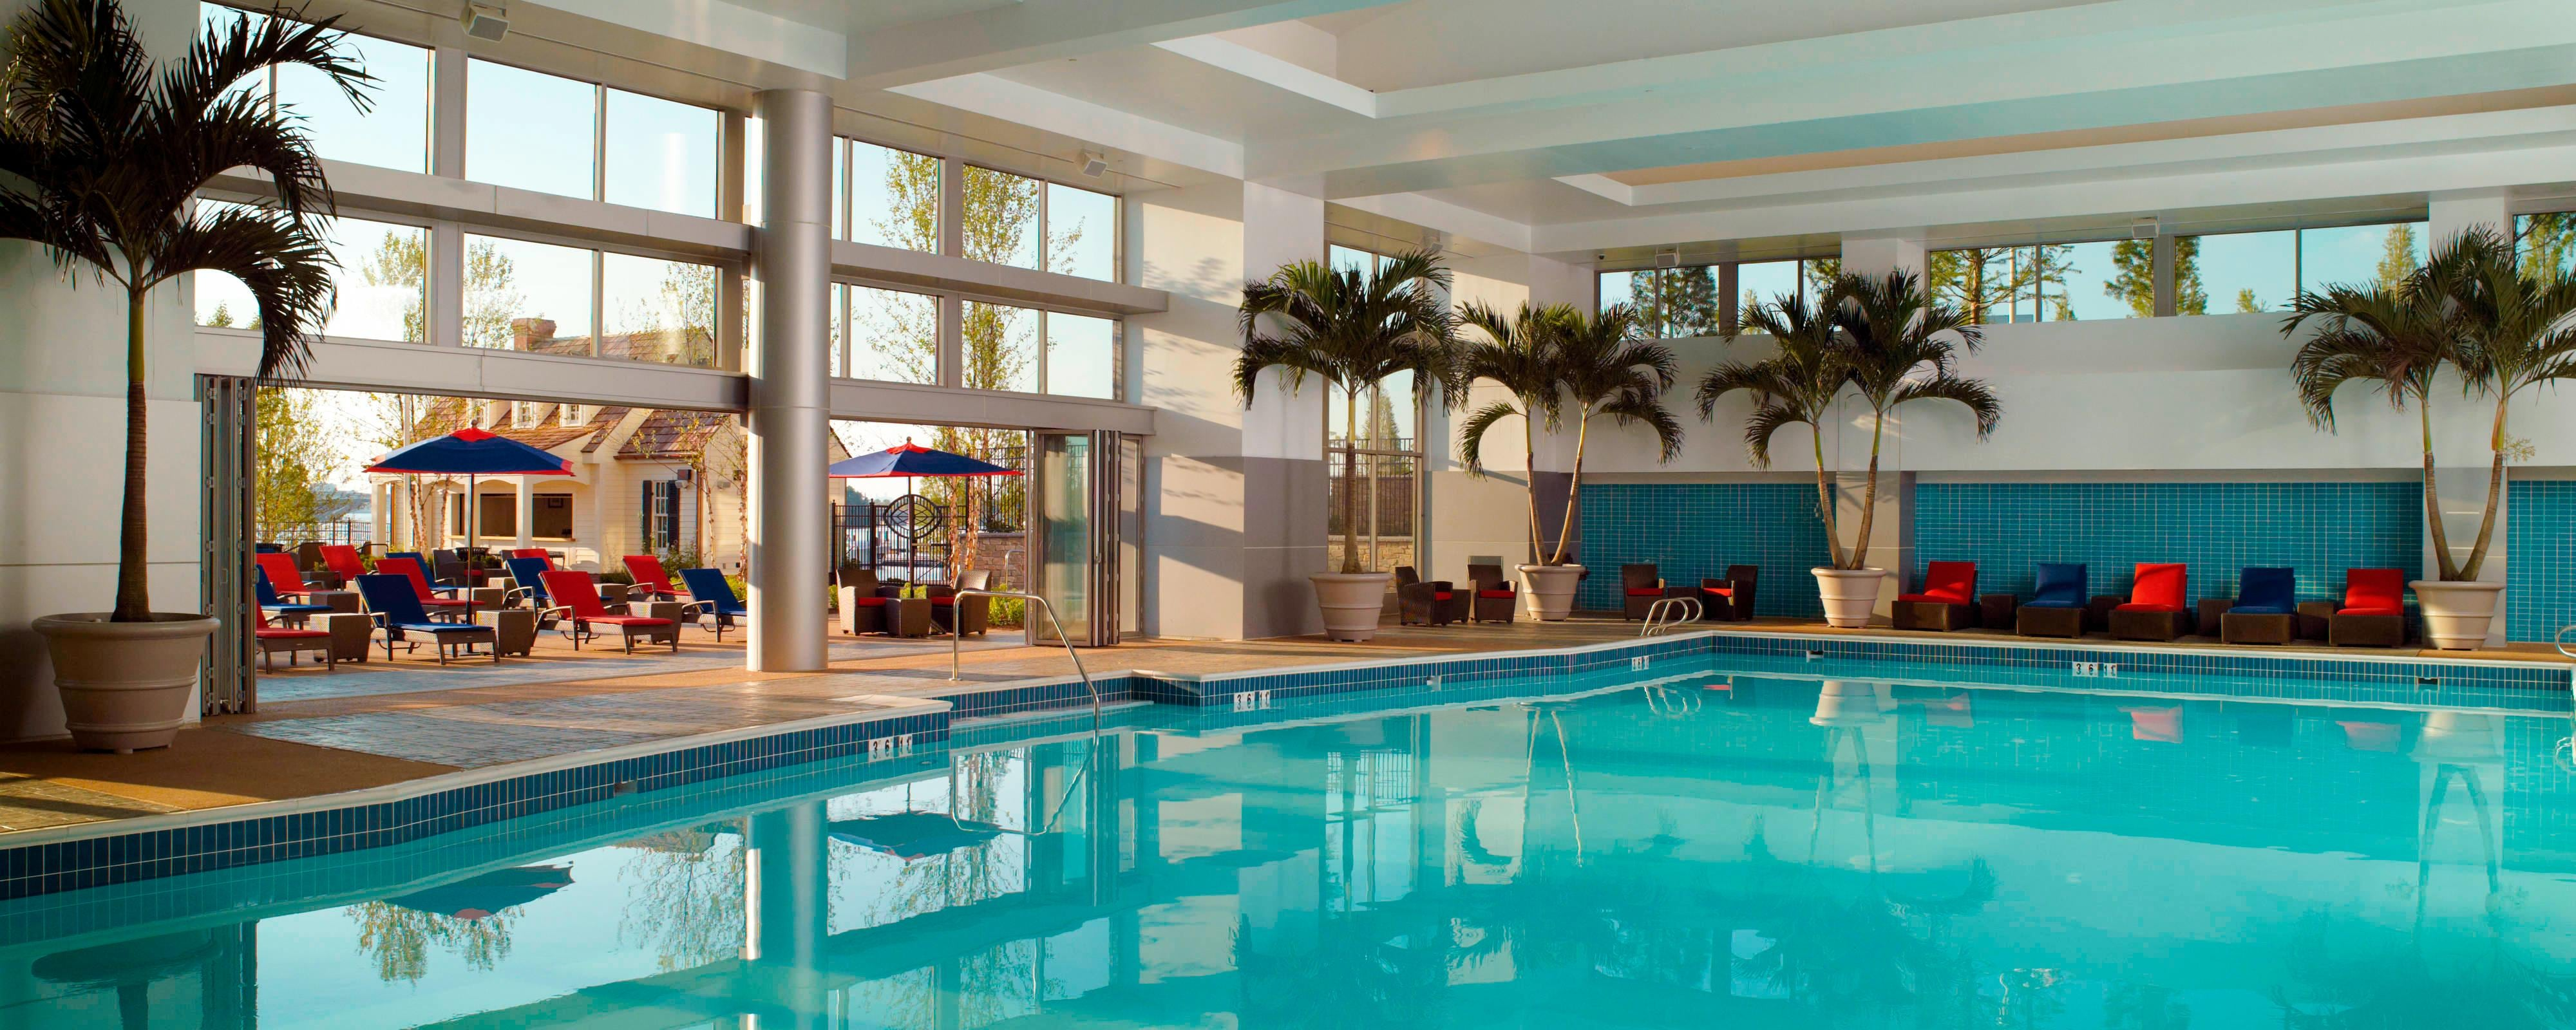 National harbor hotel with pool gaylord national resort - Cheap hotels in aberdeen with swimming pool ...